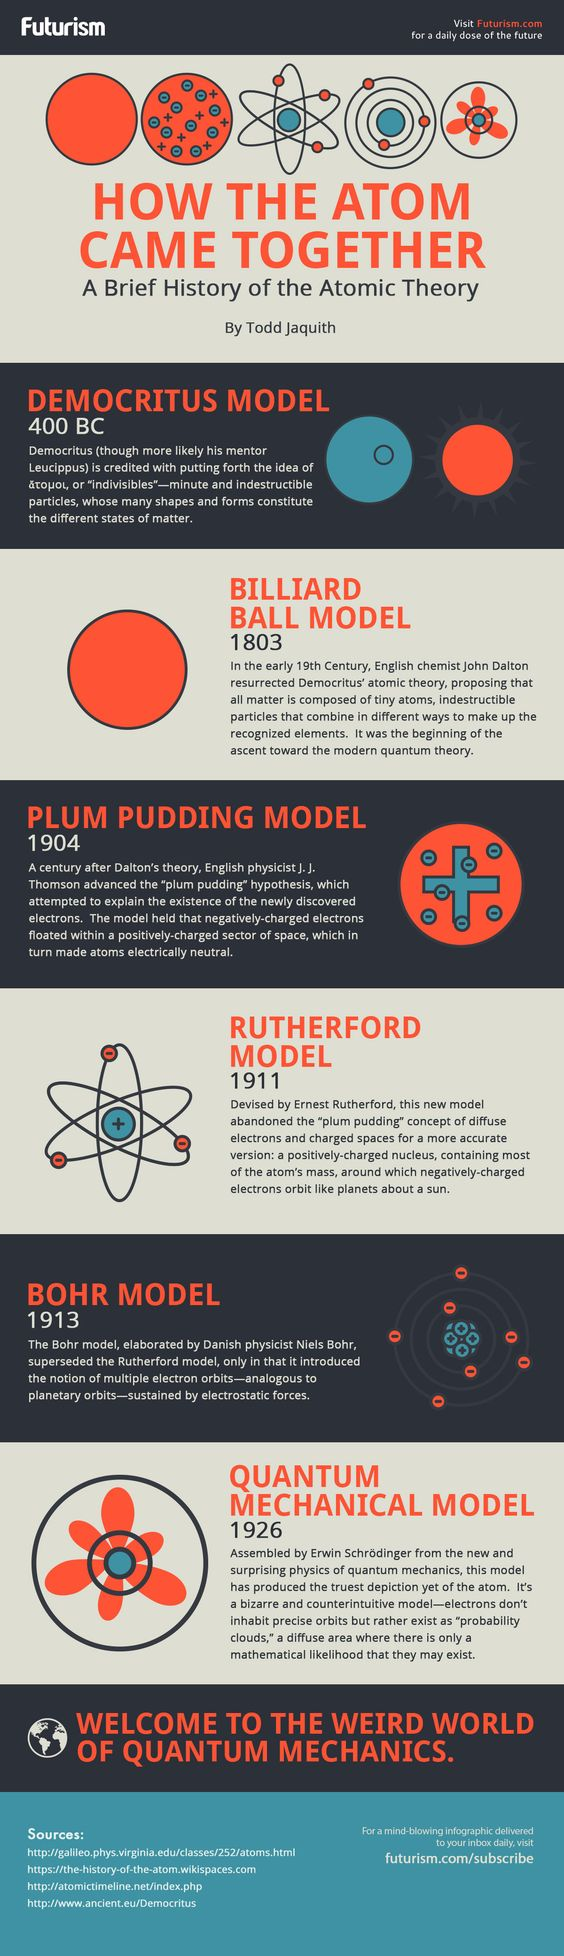 Our understanding of the atom has changed a lot over the last 2,500 years. Here's how. http://futurism.com/images/a-brief-history-of-atomic-theory-infographic/?utm_campaign=coschedule&utm_source=pinterest&utm_medium=Futurism&utm_content=A%20Brief%20History%20Of%20Atomic%20Theory%20%5BInfographic%5D